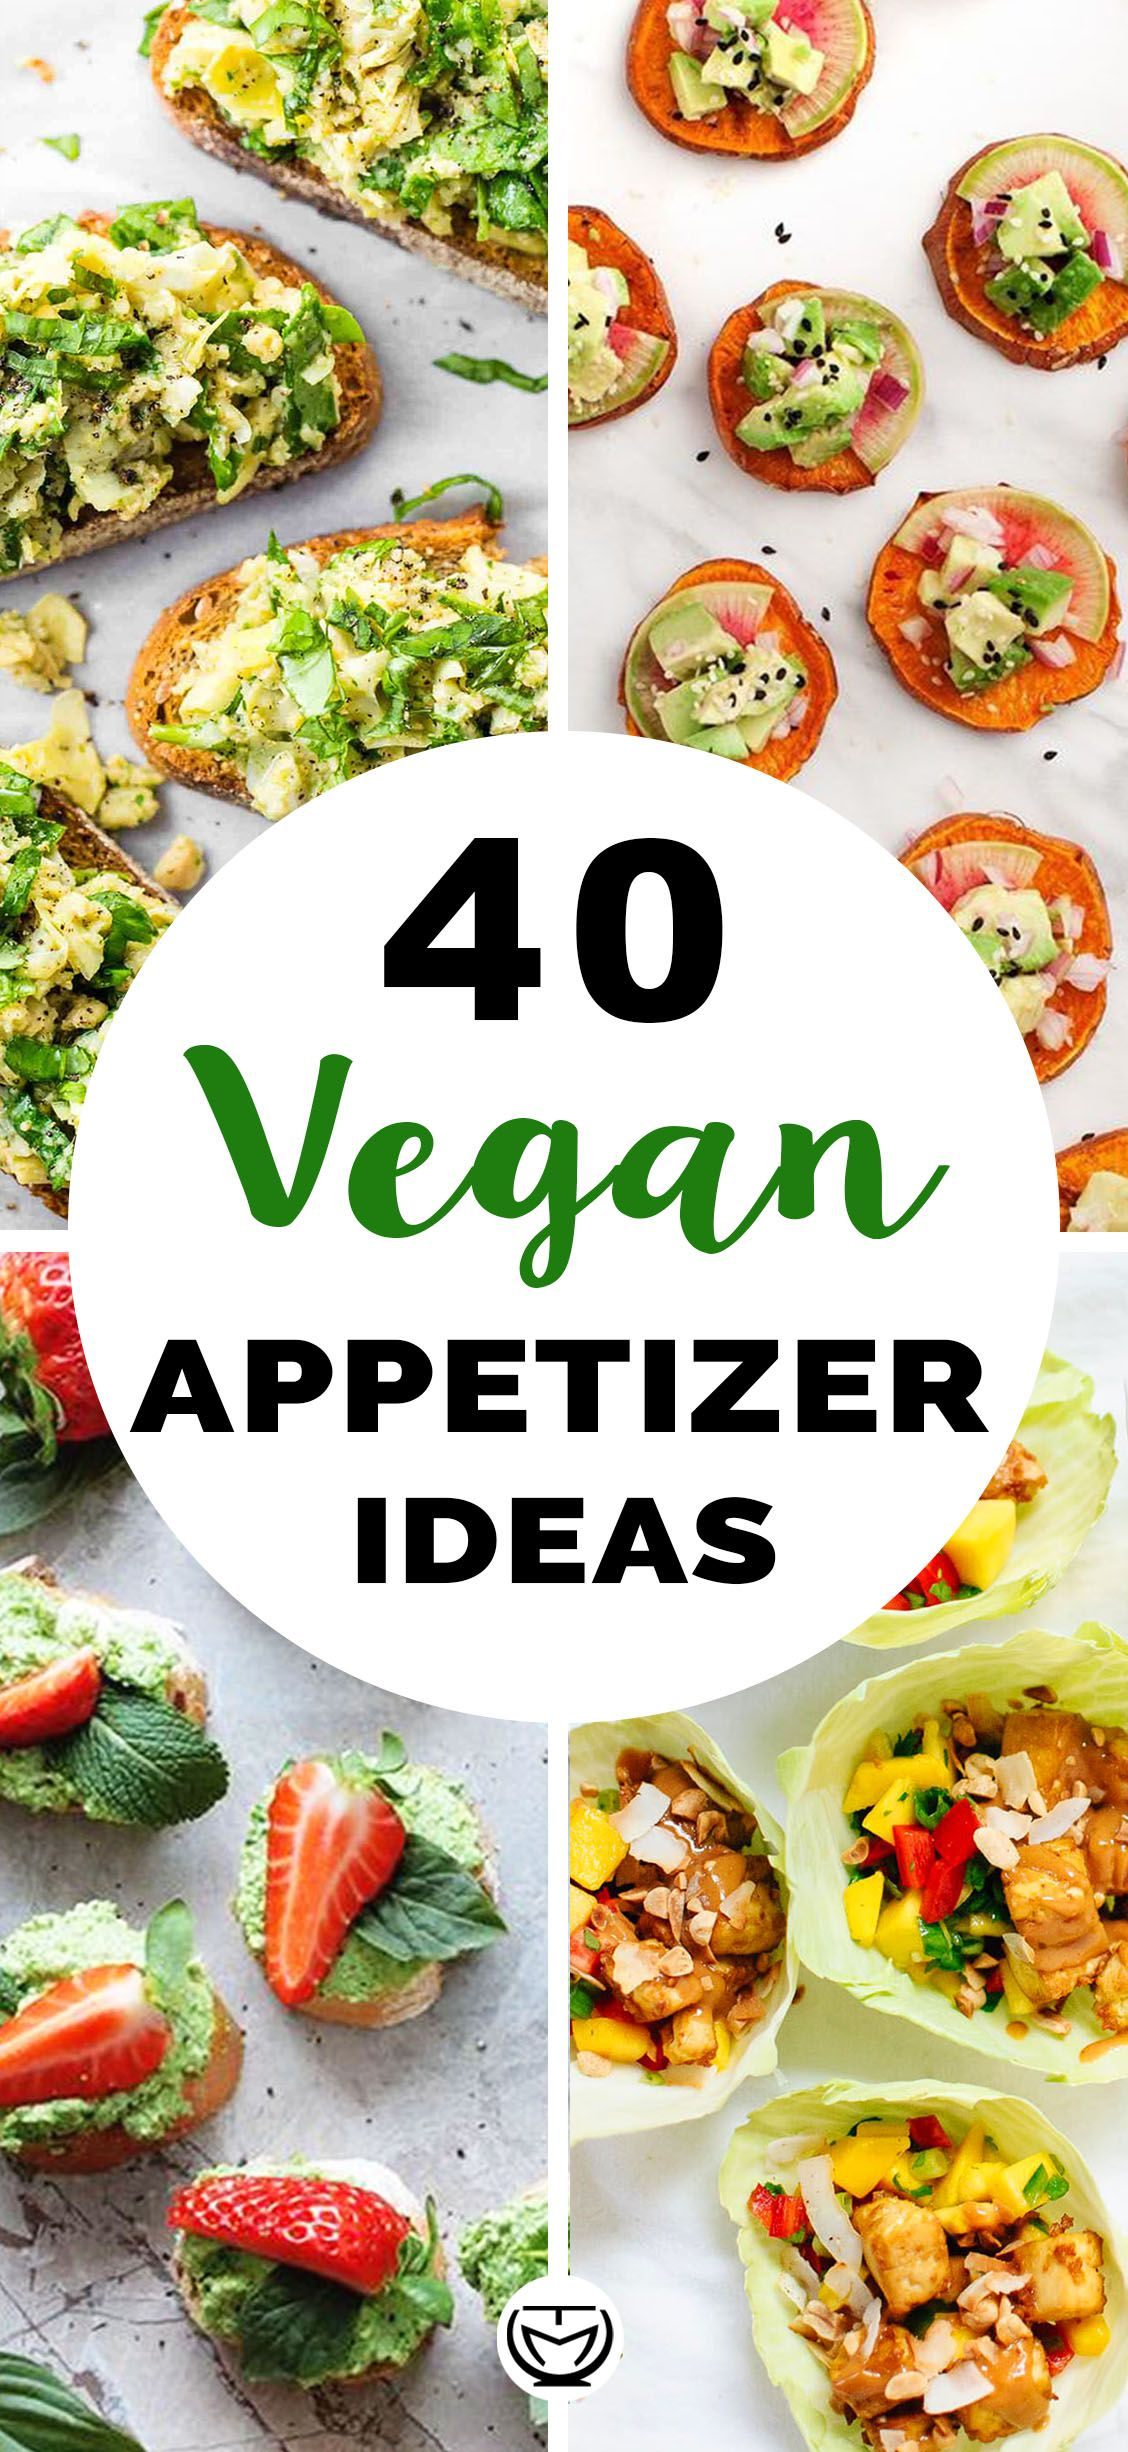 40 Easy vegan appetizer ideas #appetizersforparty